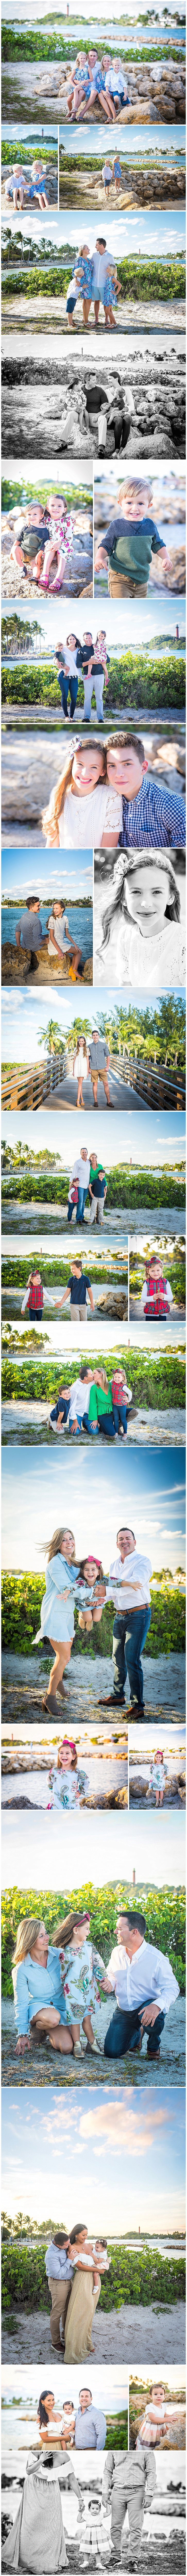 The Jupiter lighthouse, the inlet and joyful families during family photo sessions at Dubois Park in Jupiter, Florida